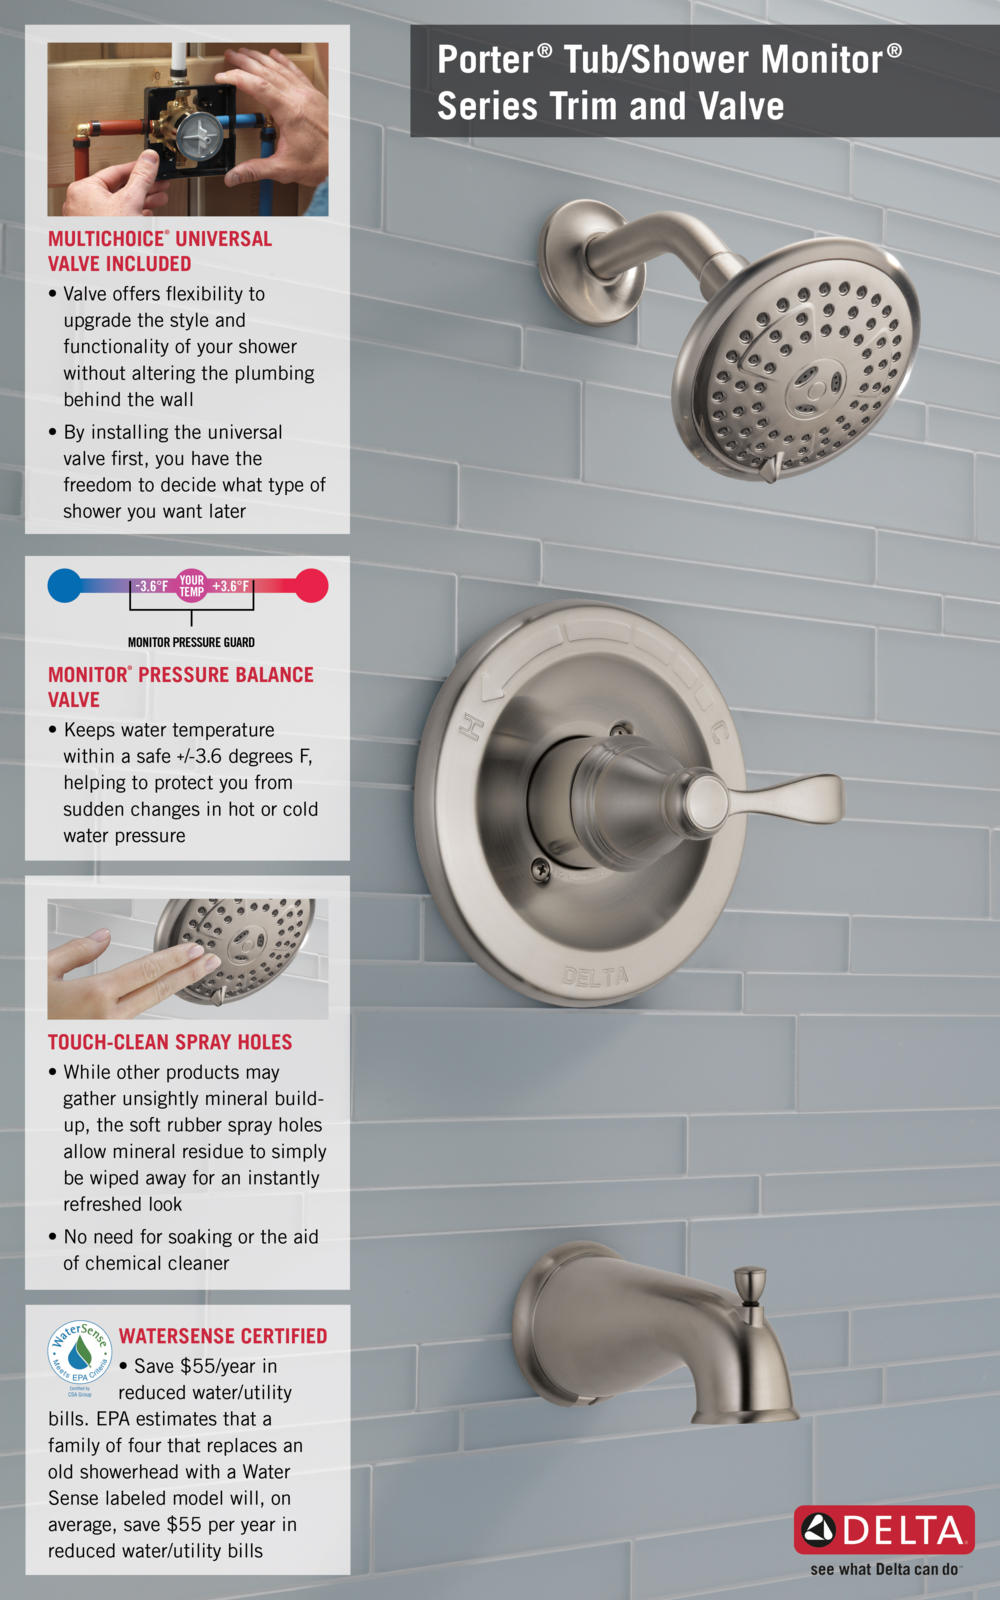 Home Depot Faucet 144984-BN-A T14 Shower with Valve Infographic